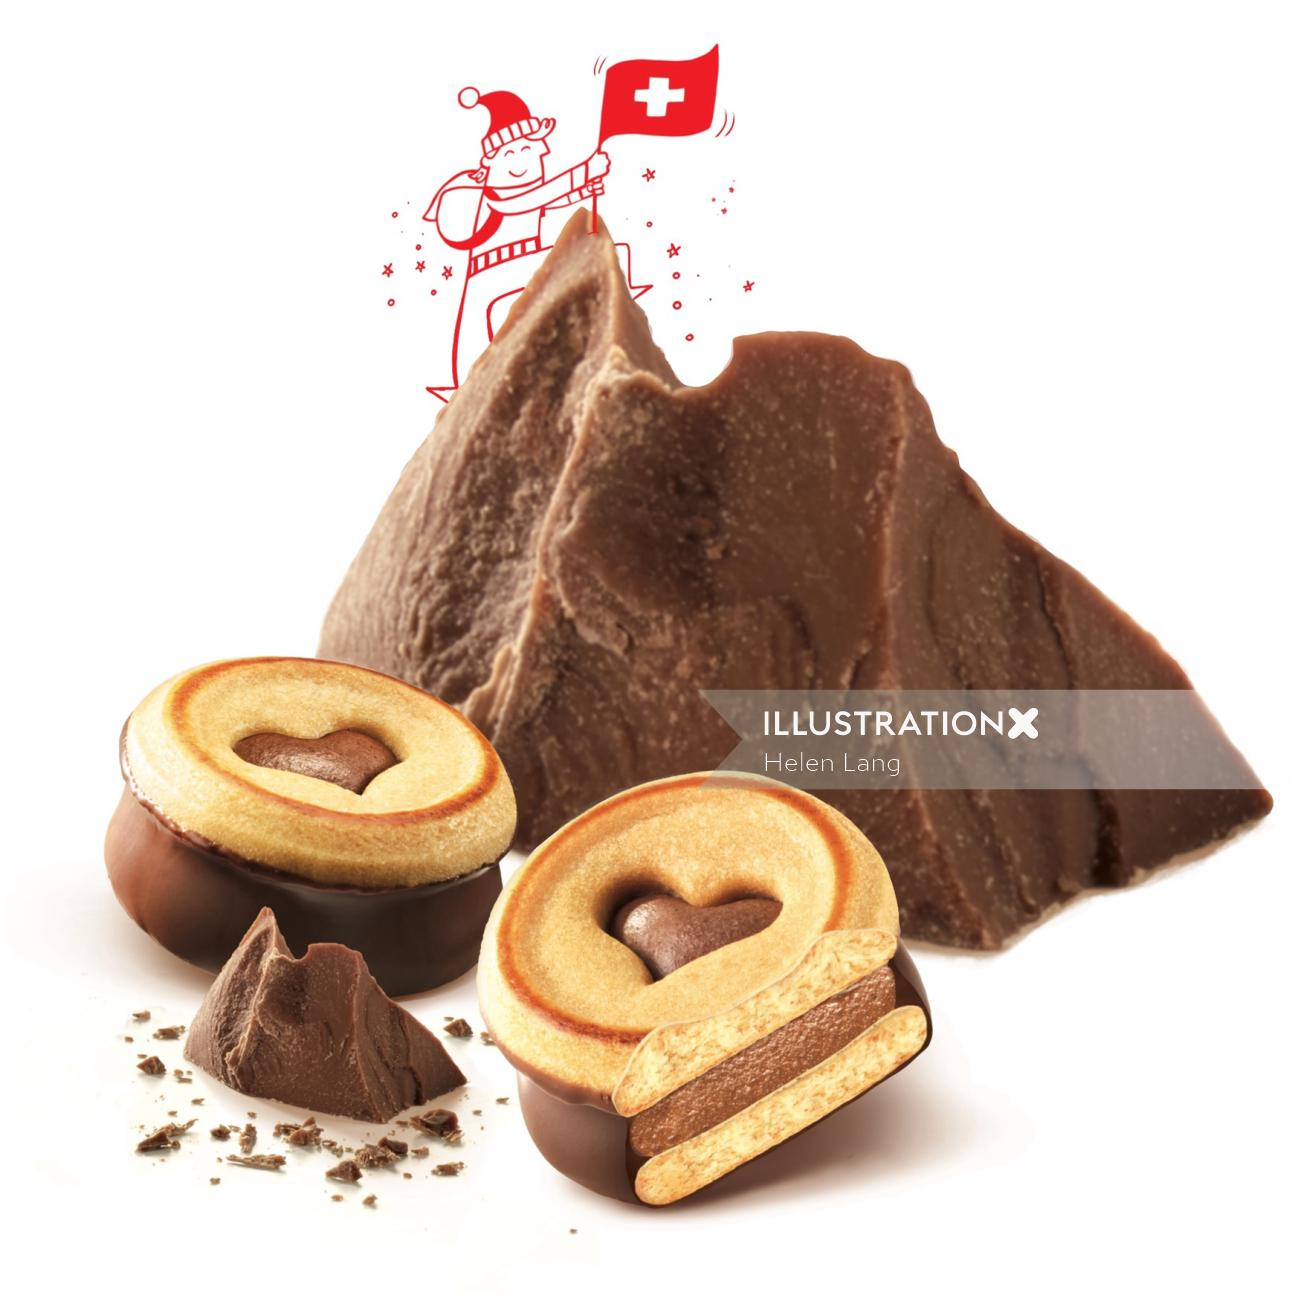 Graphic design of chocolate hill